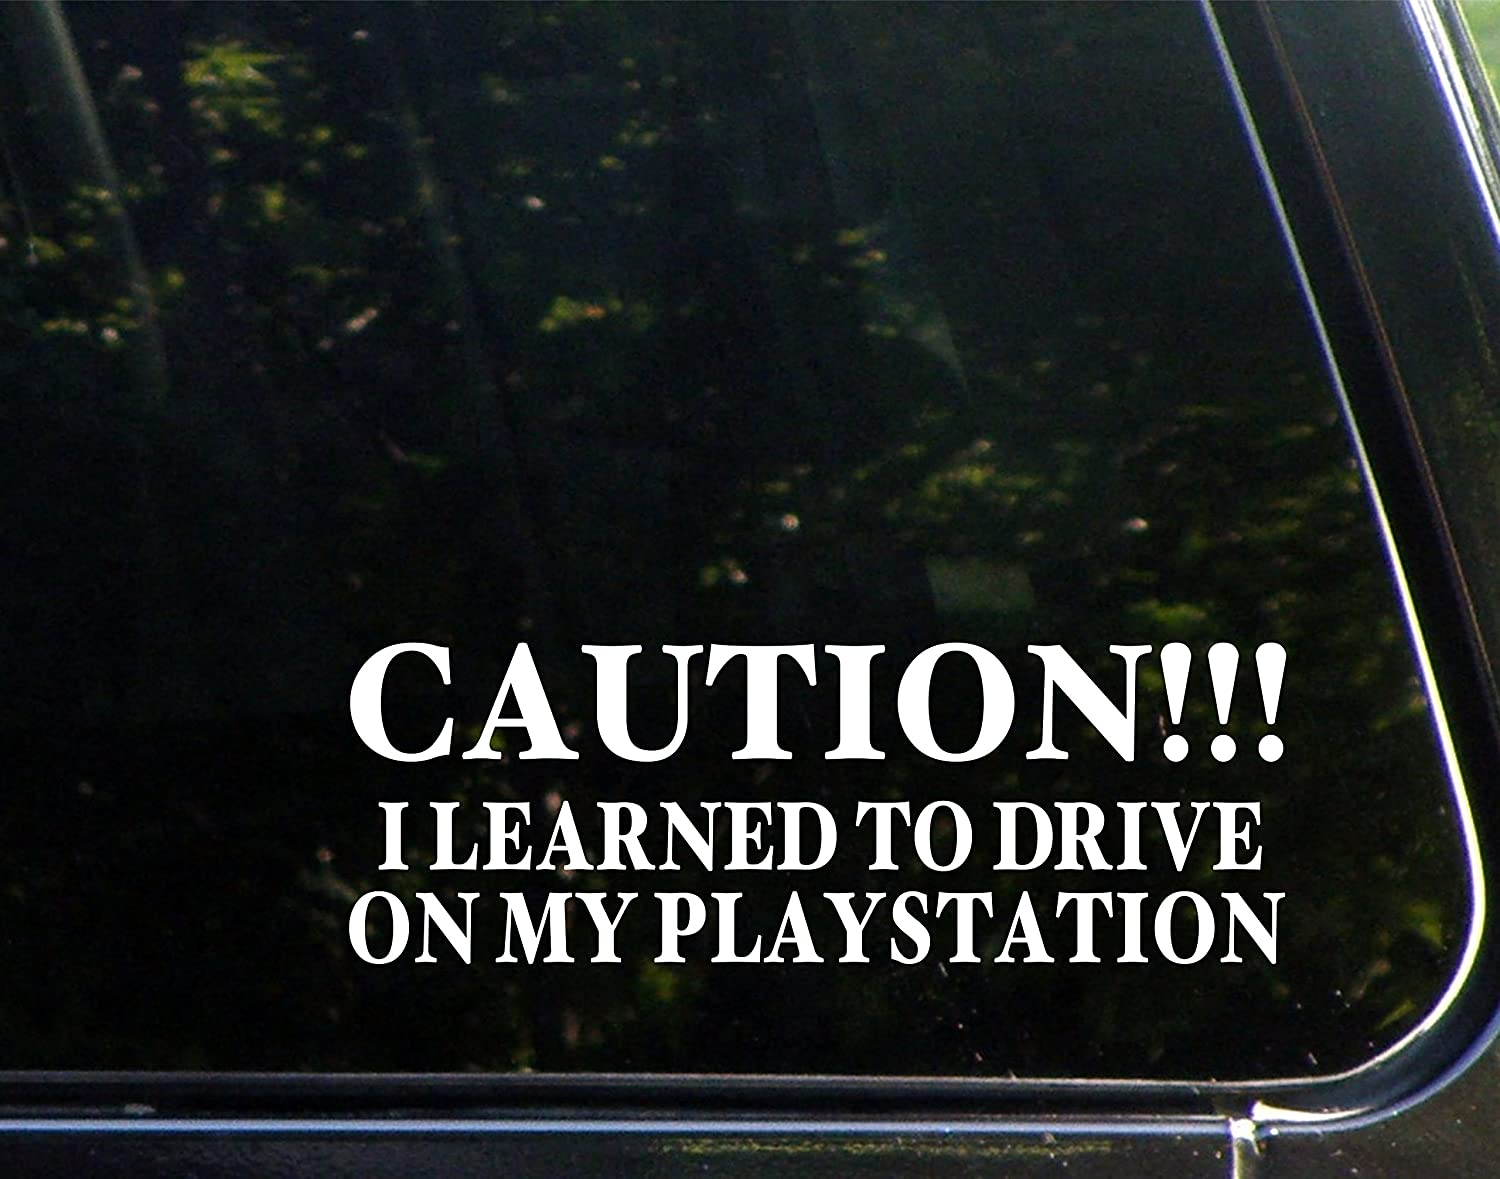 Amazoncom CAUTION I Learned To Drive On My Playstation X - Office depot window decals instructions